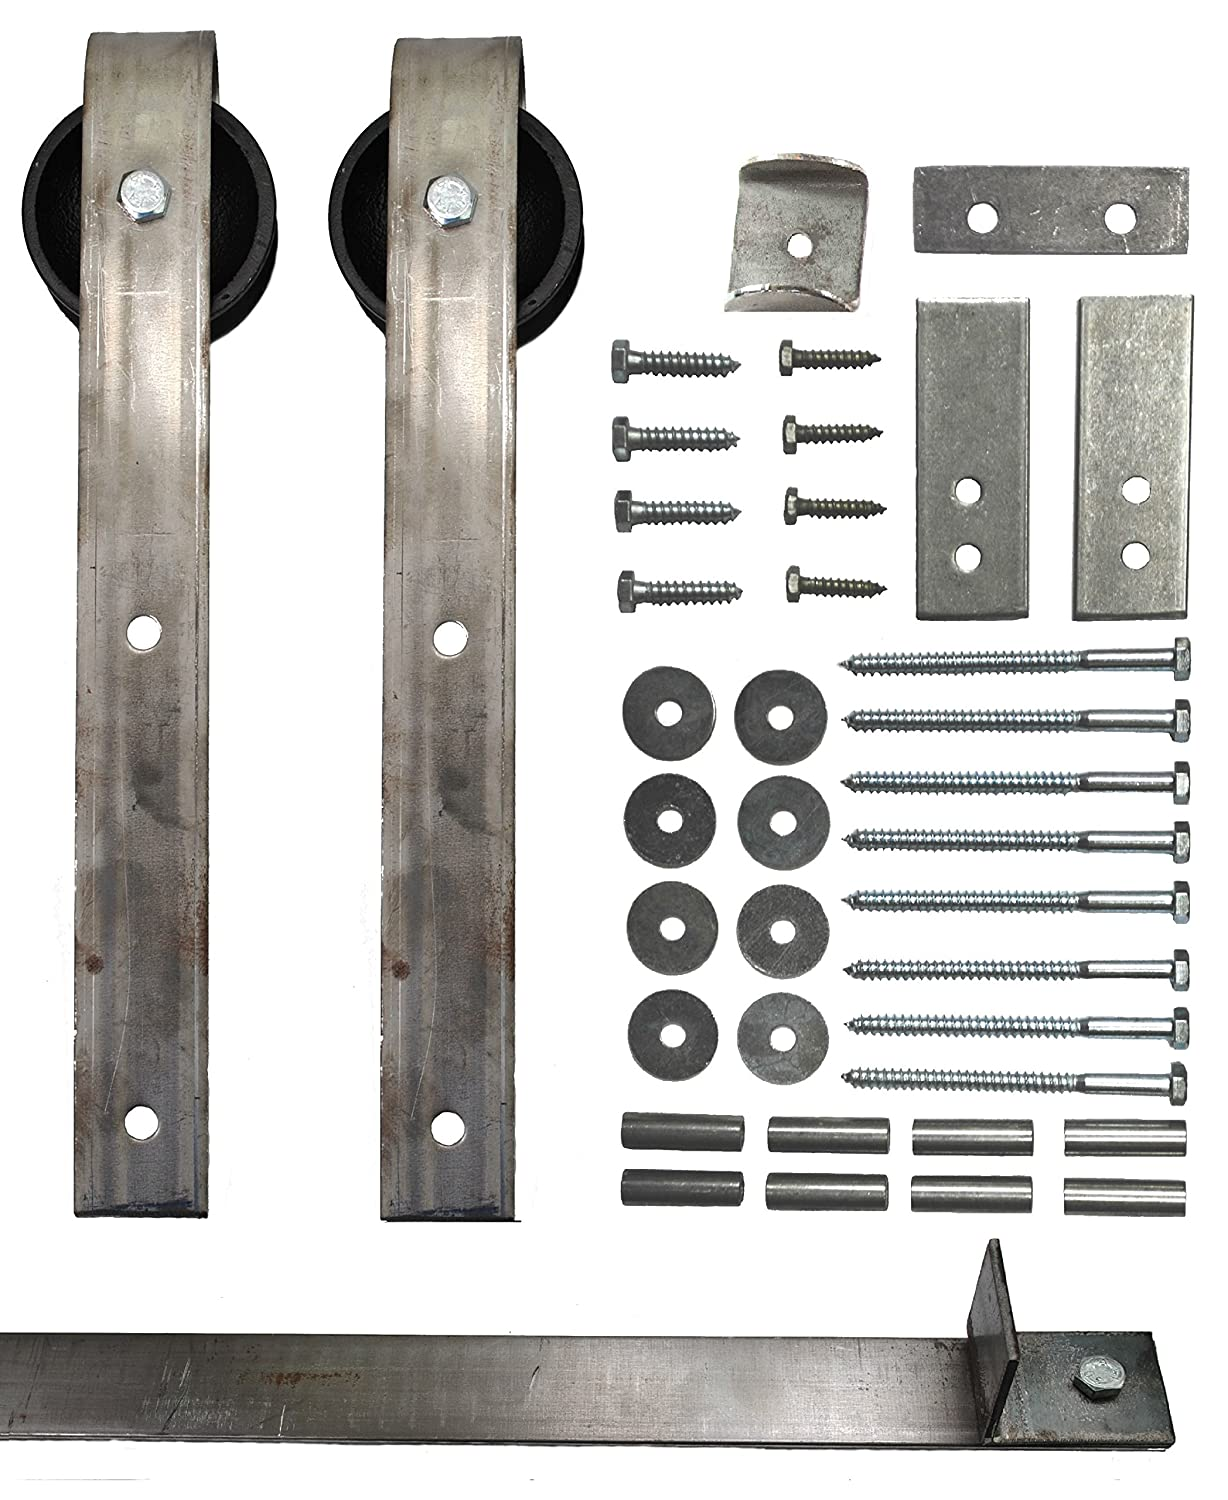 Sliding Barn Door Hardware Kit with 8 Ft. Track Included - Made in USA Amazon.com Industrial u0026 Scientific  sc 1 st  Amazon.com & Sliding Barn Door Hardware Kit with 8 Ft. Track Included - Made in ... pezcame.com